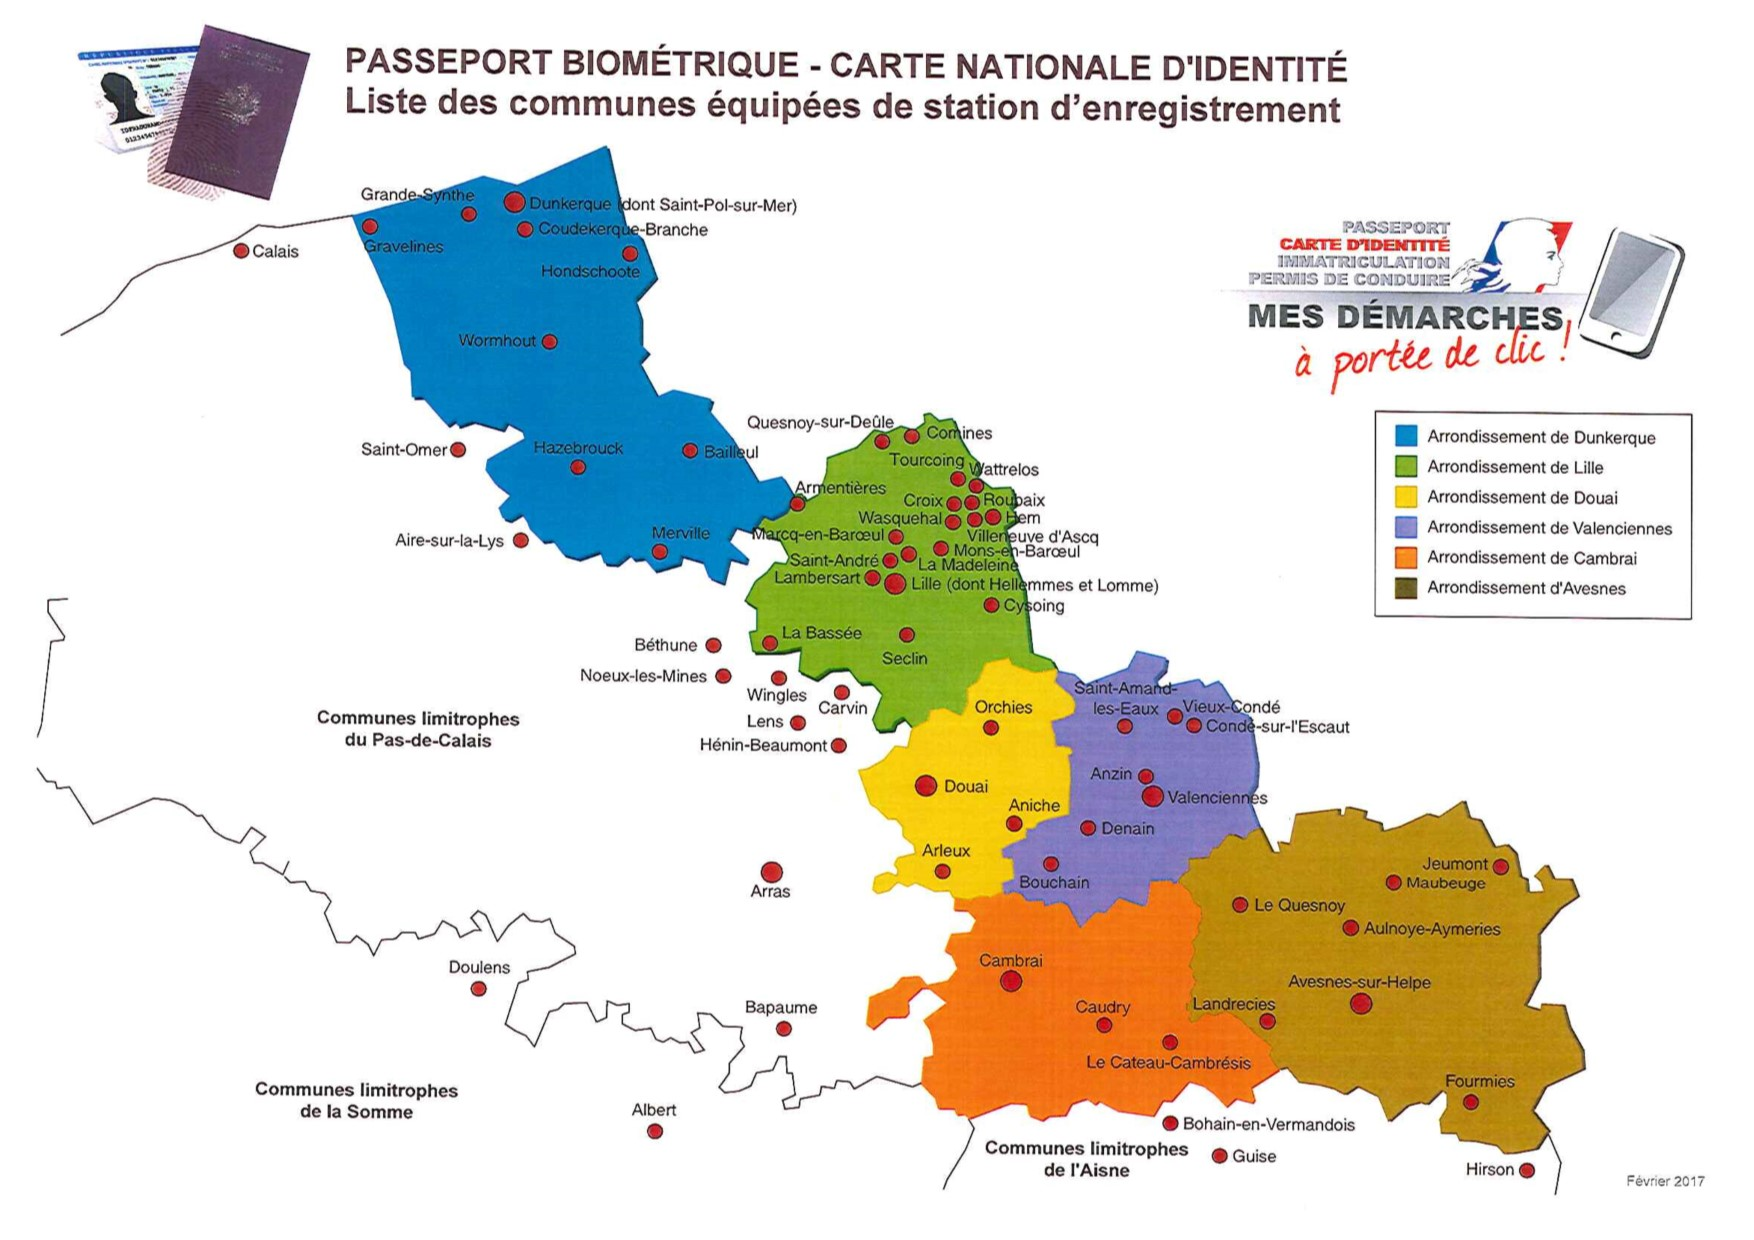 cni-carte-des-mairies-equipees-de-stations-denregistrement